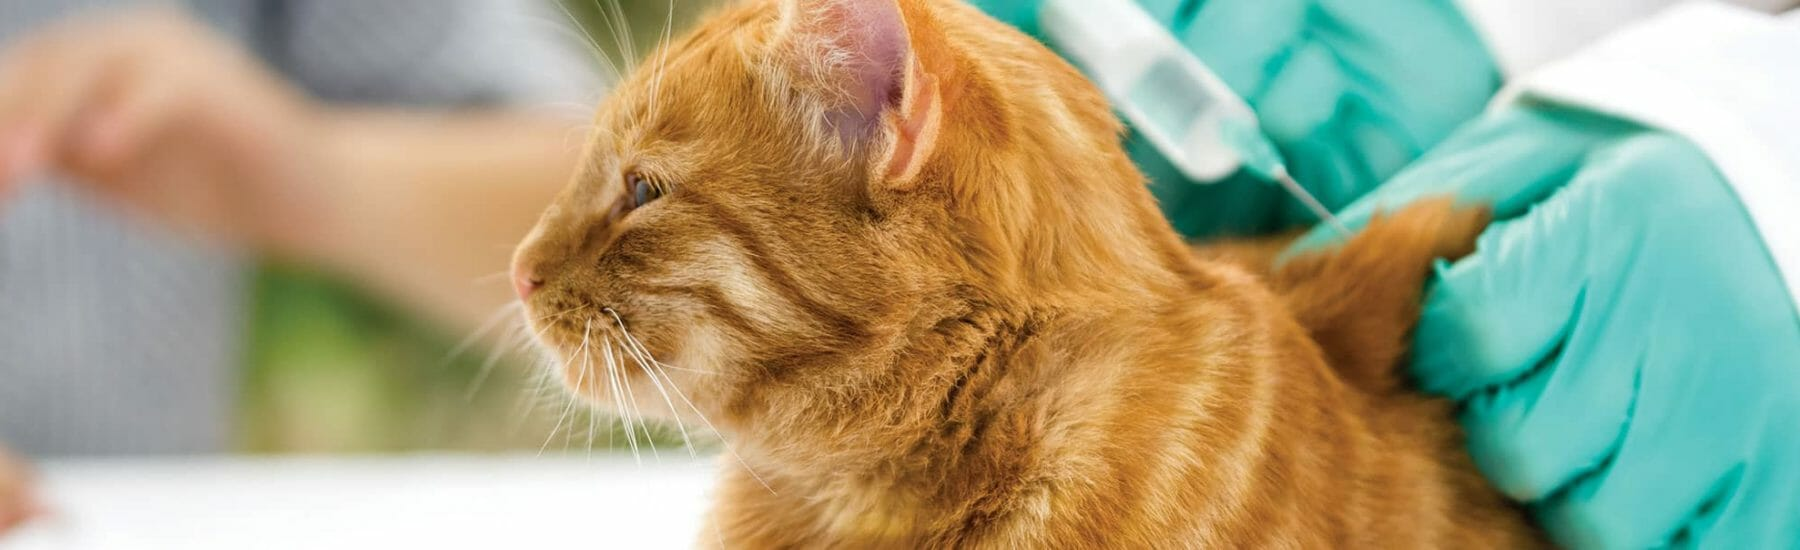 Vaccinations for Kittens and Cats